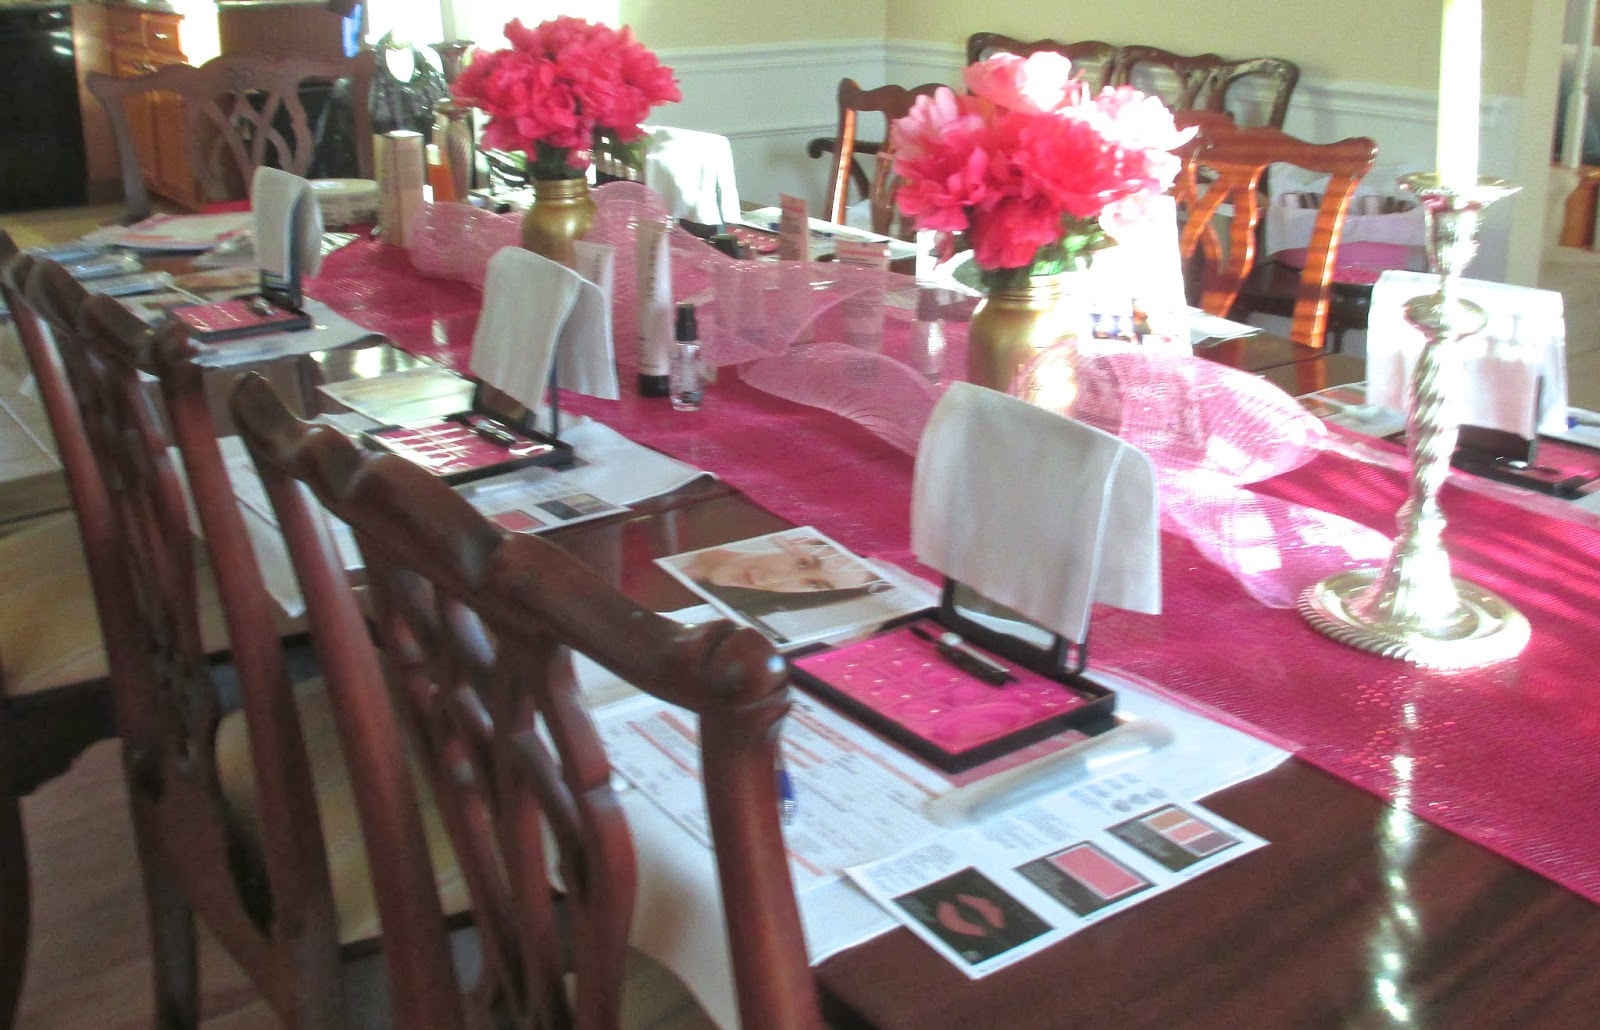 Dark Pink Deco Mesh (18 Inch Width) Worked As The Table Runner. Twirled Light  Pink Deco Mesh Added Some Height And Flair To The Center Of The Table.